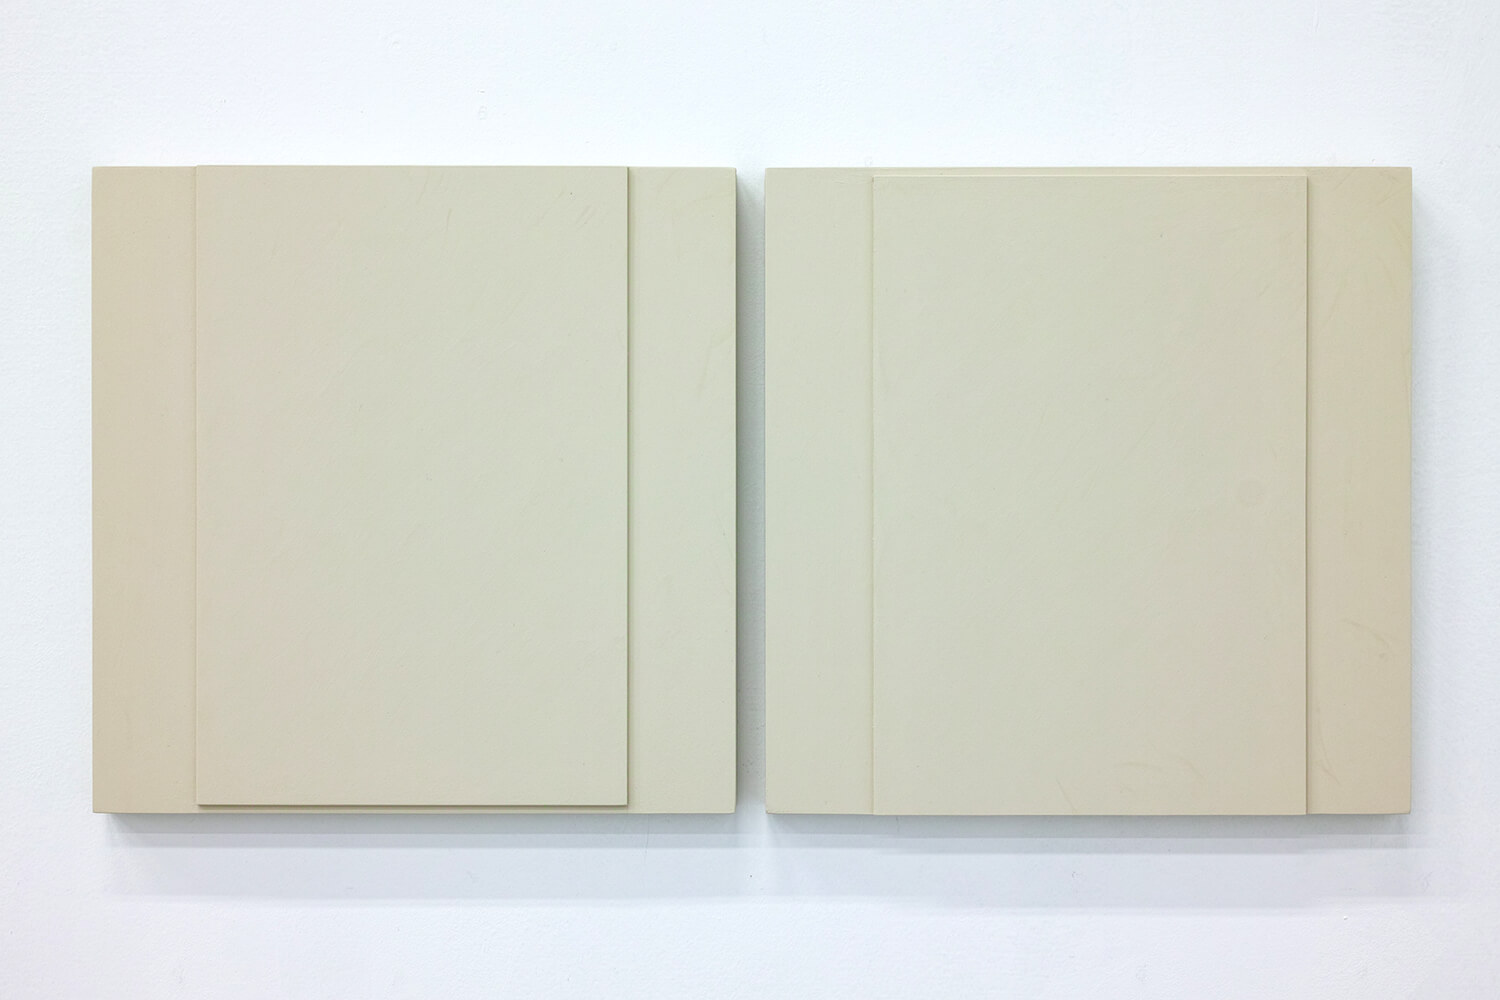 TS1720<br>Colour Gesso on Panel, 30x30cm each, 2017